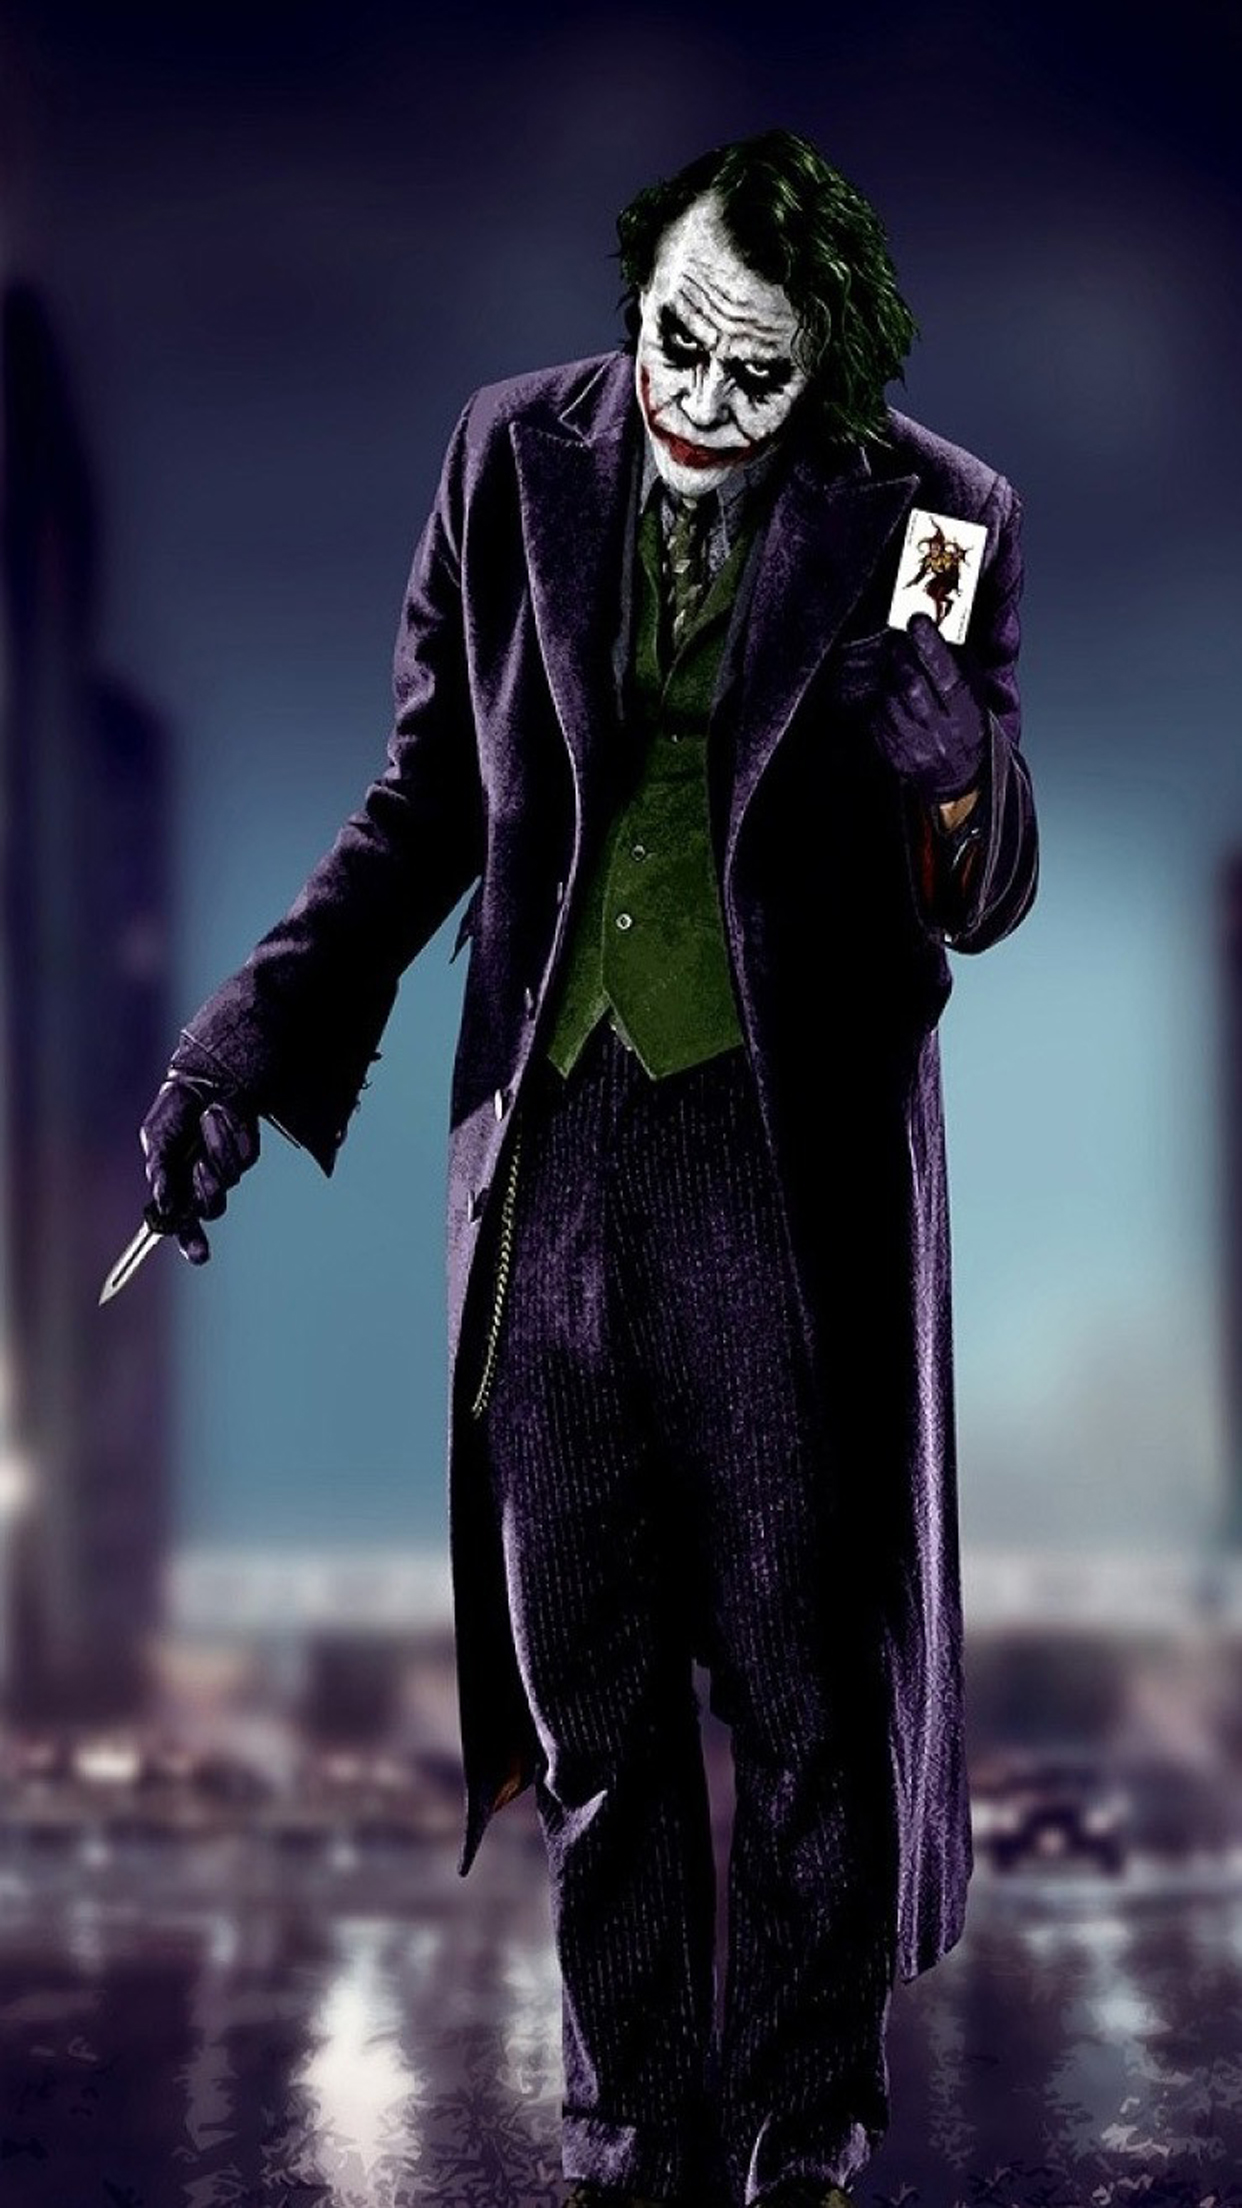 Joker Wallpaper Iphone X